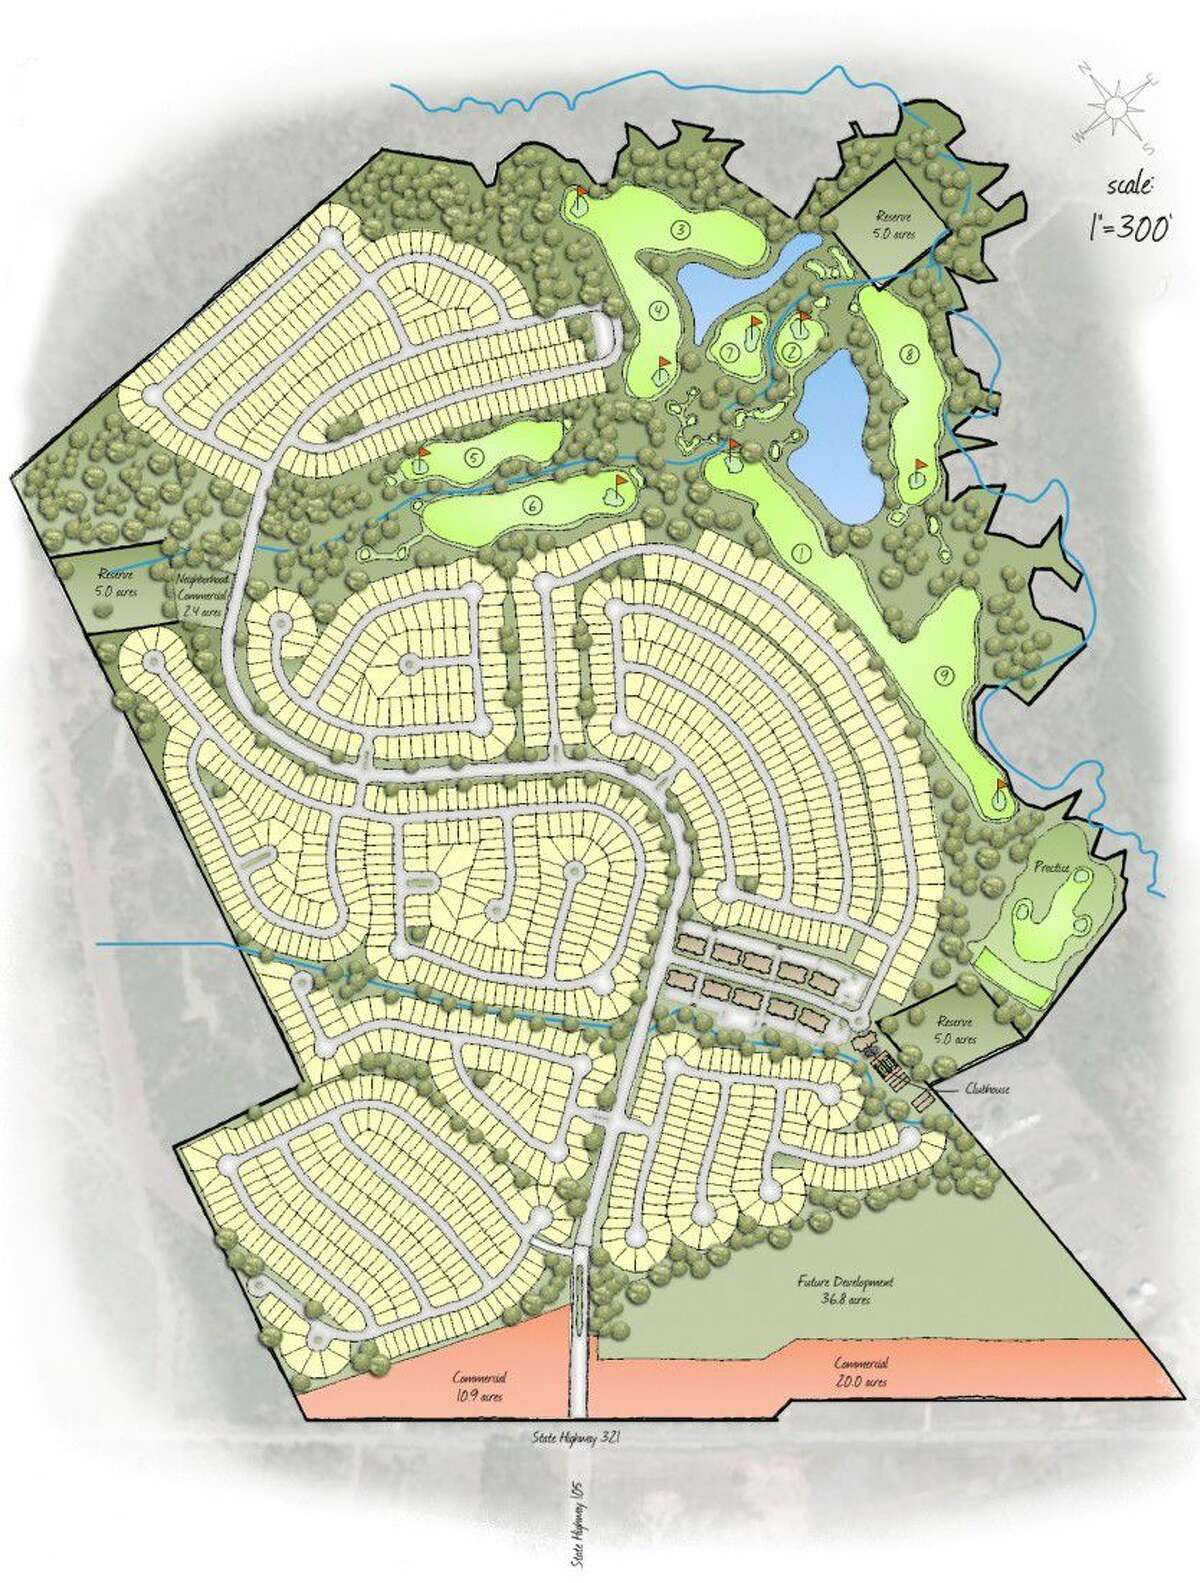 A new 615-acre subdivision featuring 1,400 home sites and 240 condominiums is being planned for Cleveland by McKinley Development Company of Willis.